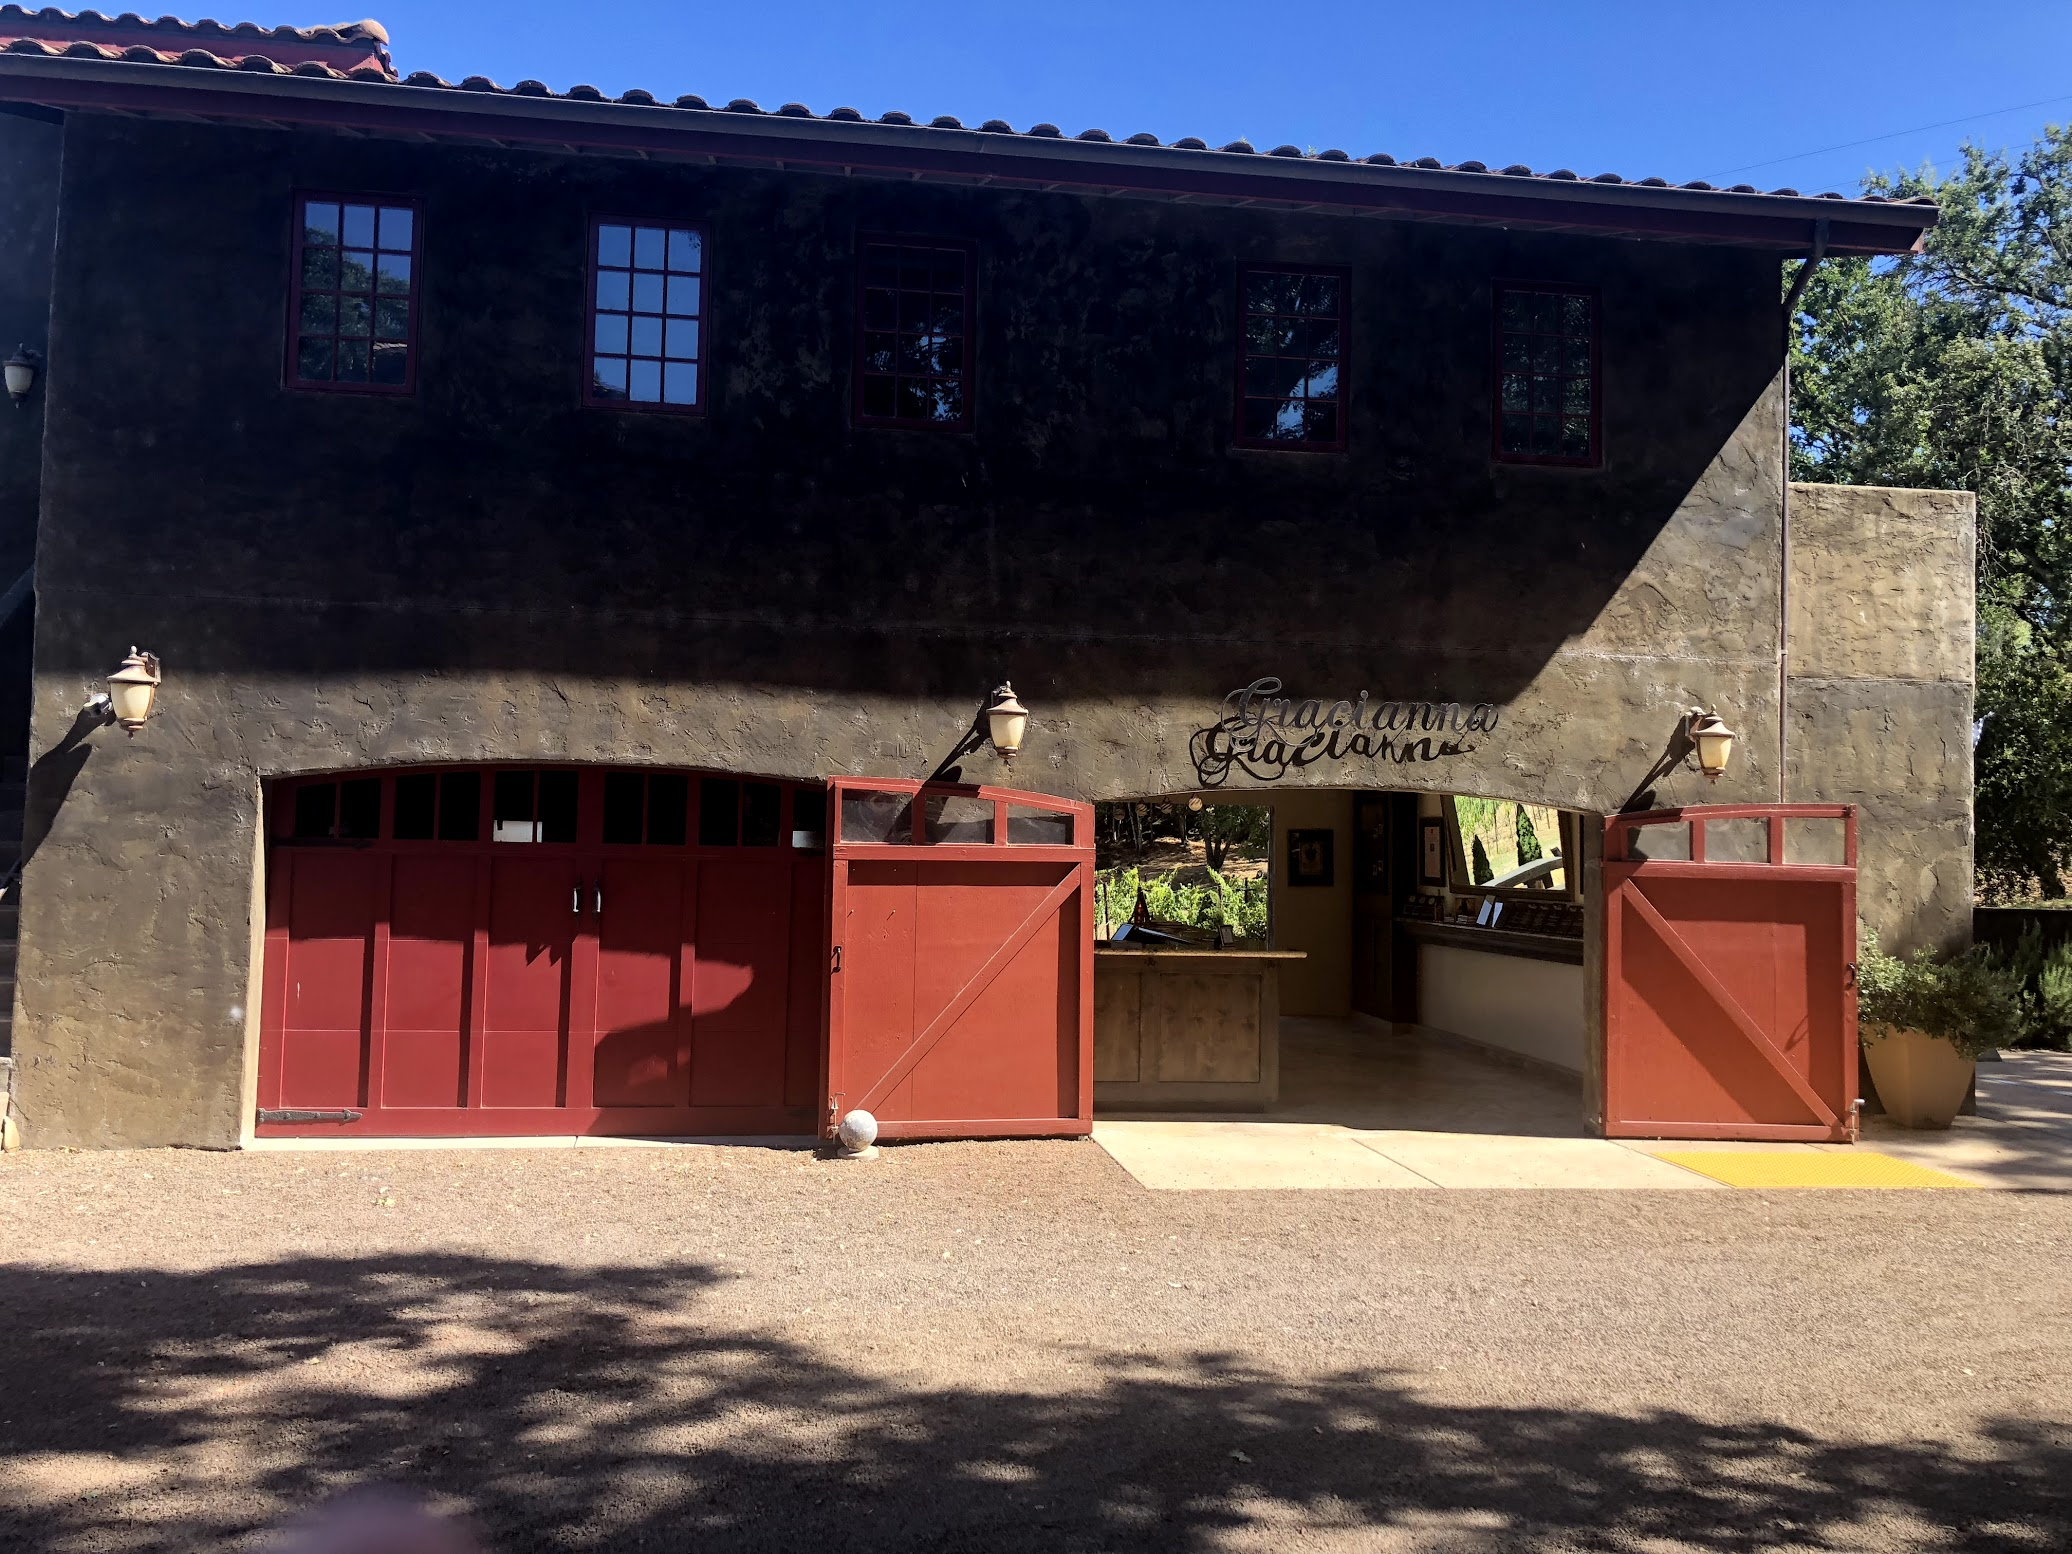 Gracianna Winery Grateful Wines